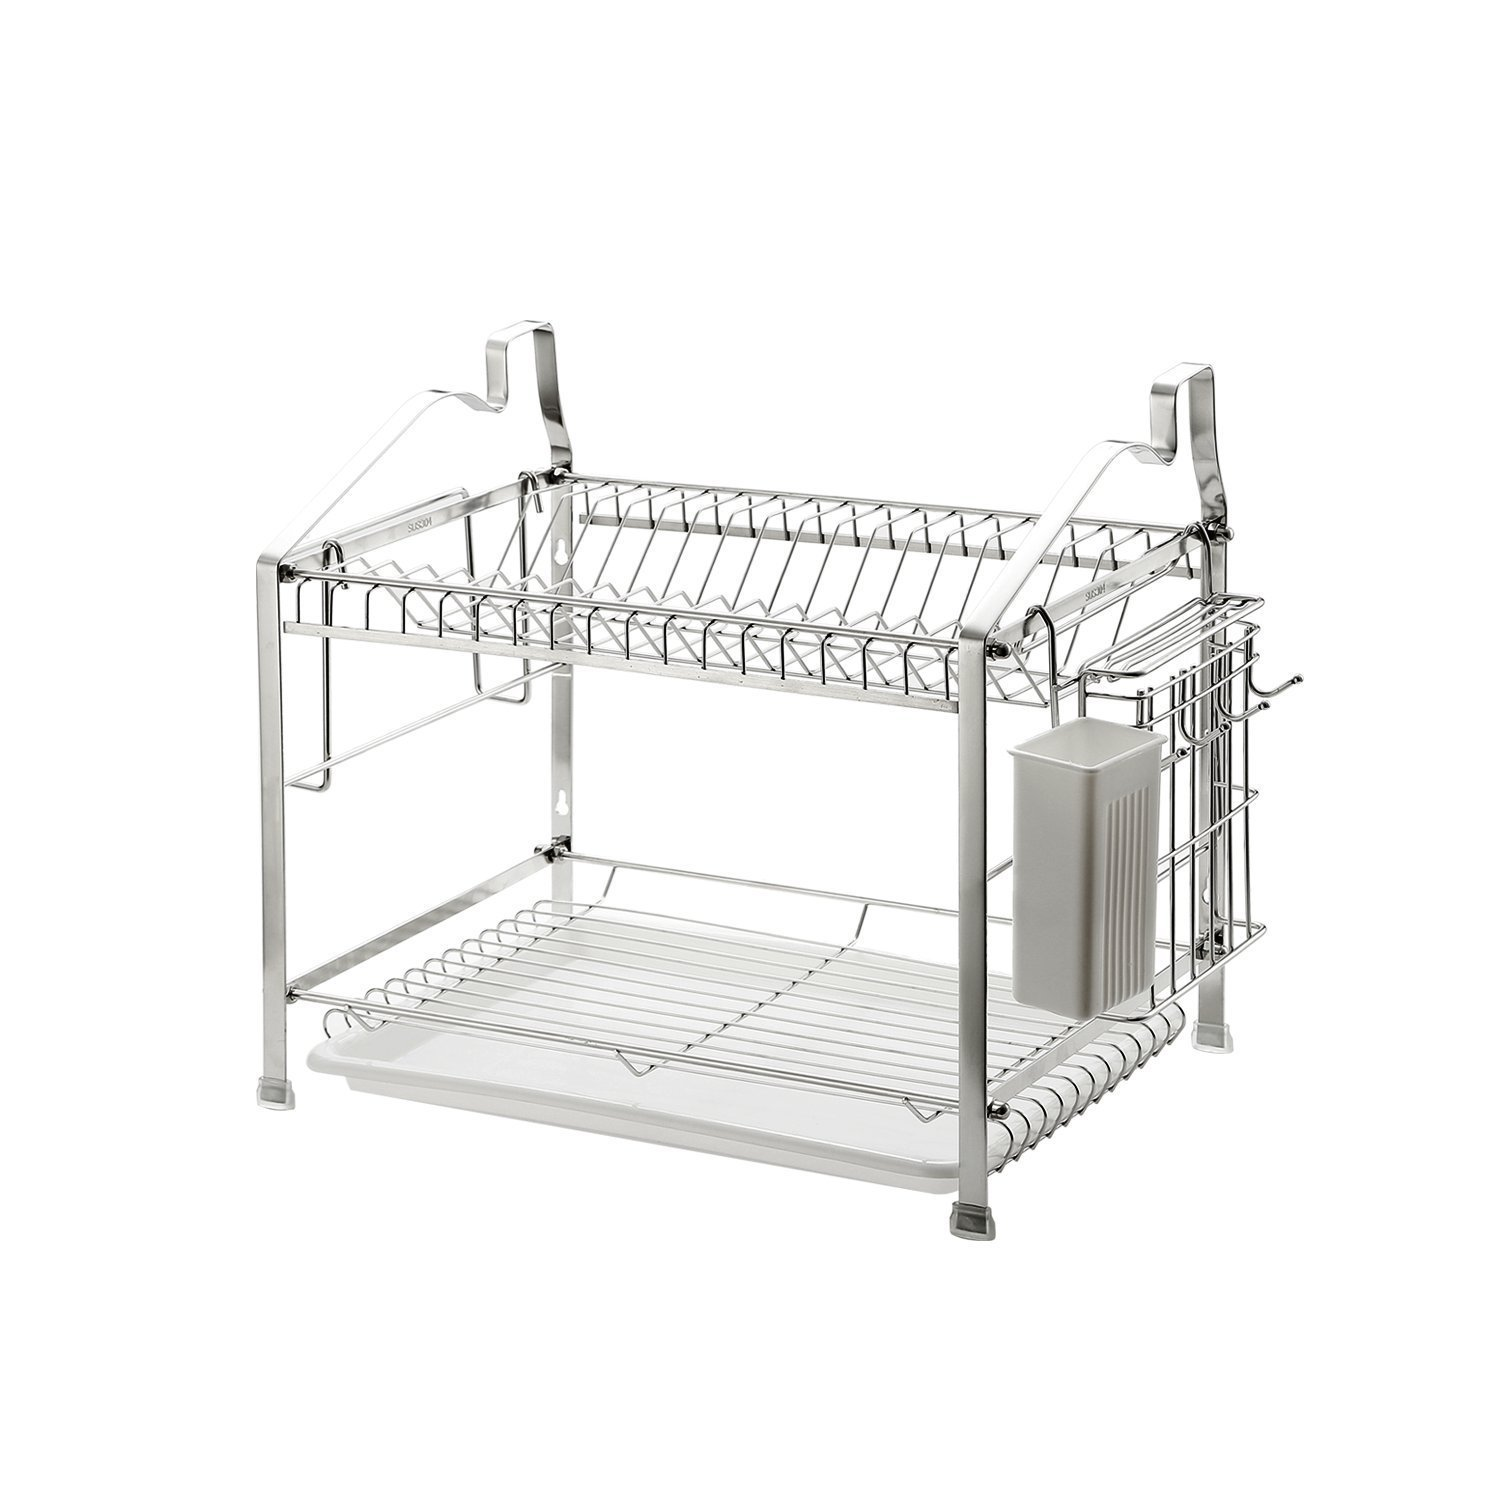 Top 6 wall mounted dish rack 2018